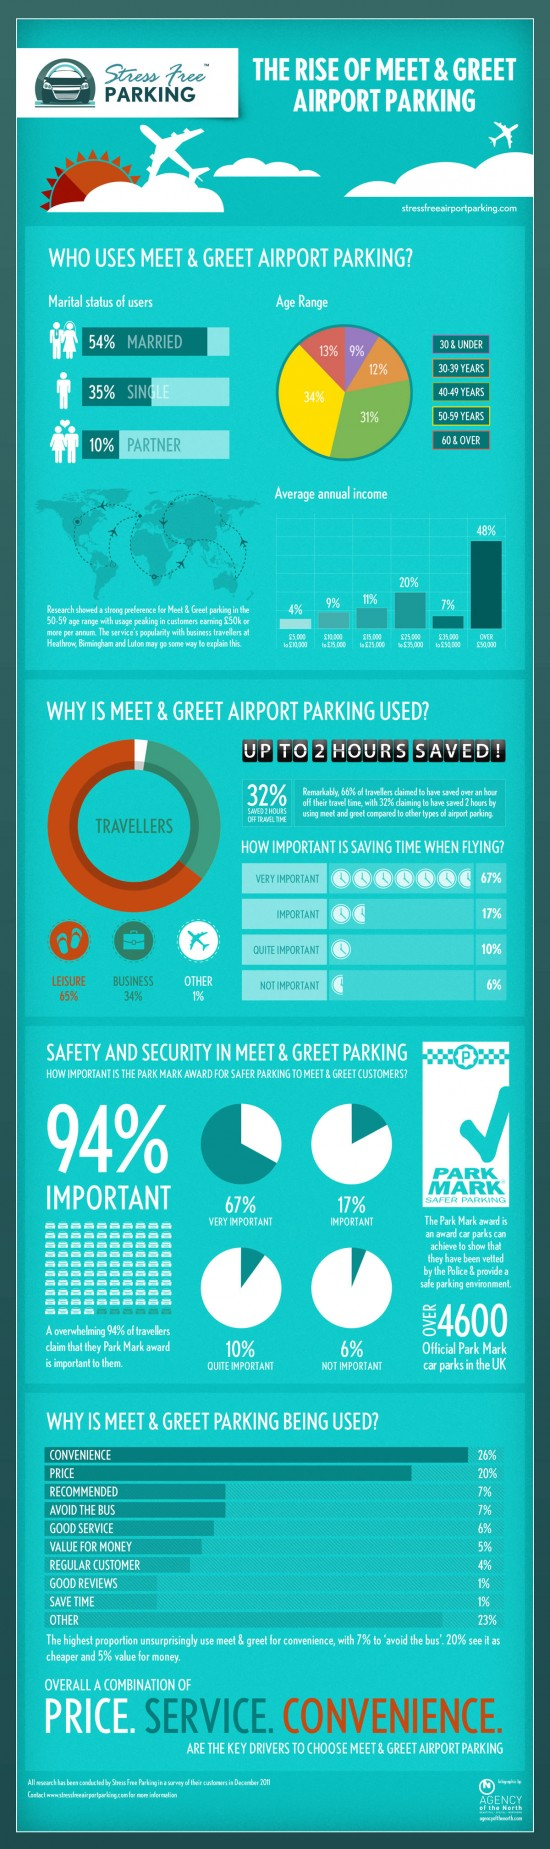 The rise of meet greet airport parking infografiche dal web the rise of meet and greet airport parking uk infographic infographics showcase kristyandbryce Images